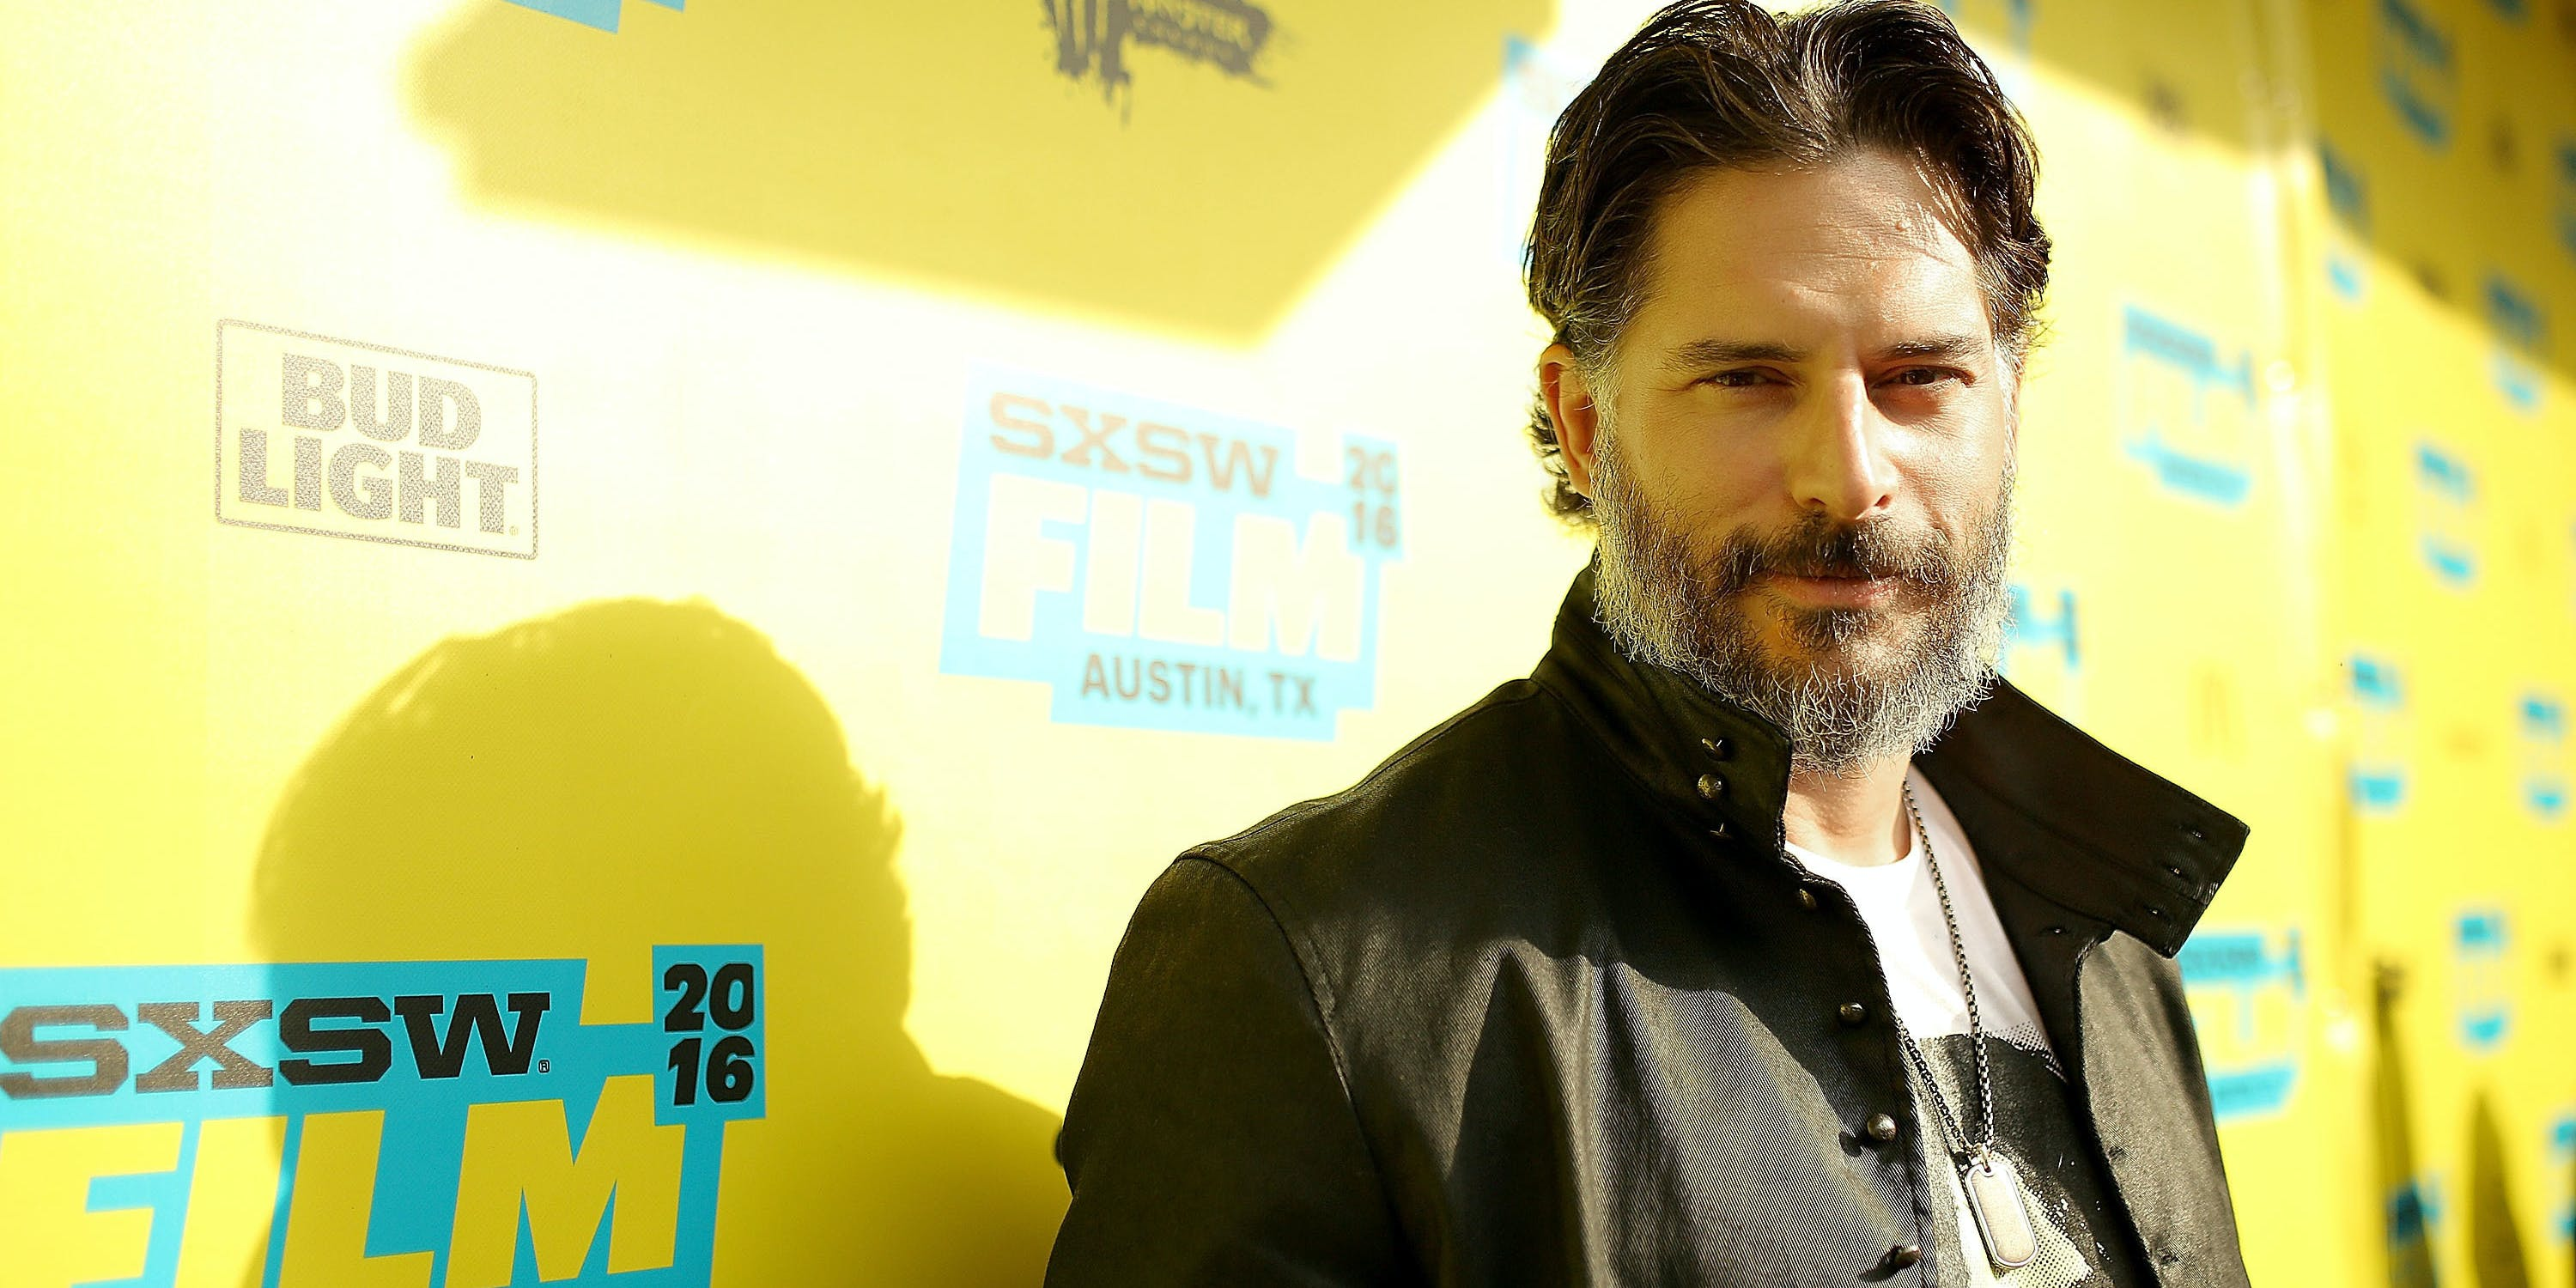 AUSTIN, TX - MARCH 17:  Actor Joe Manganiello attends the premiere of 'Pee-wee's Big Holiday' during the 2016 SXSW Music, Film + Interactive Festival at Paramount Theatre on March 17, 2016 in Austin, Texas.  (Photo by Mike Windle/Getty Images for SXSW)